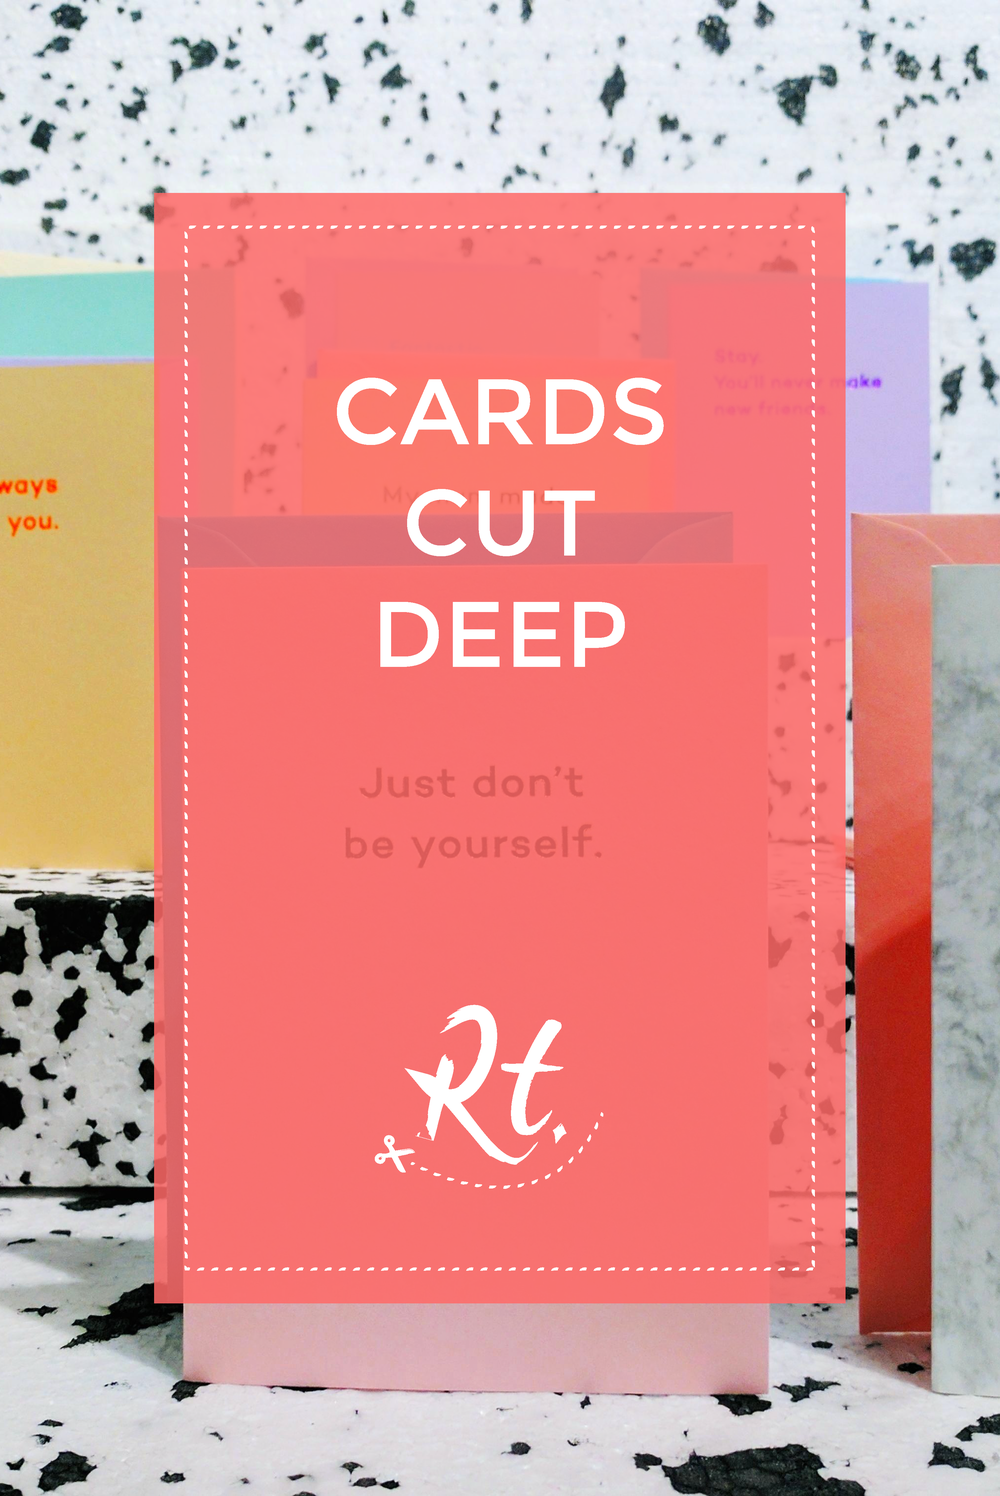 Cards Cut Deep by Rosh Thanki, Mean Mail stationery card launch at Exposure London